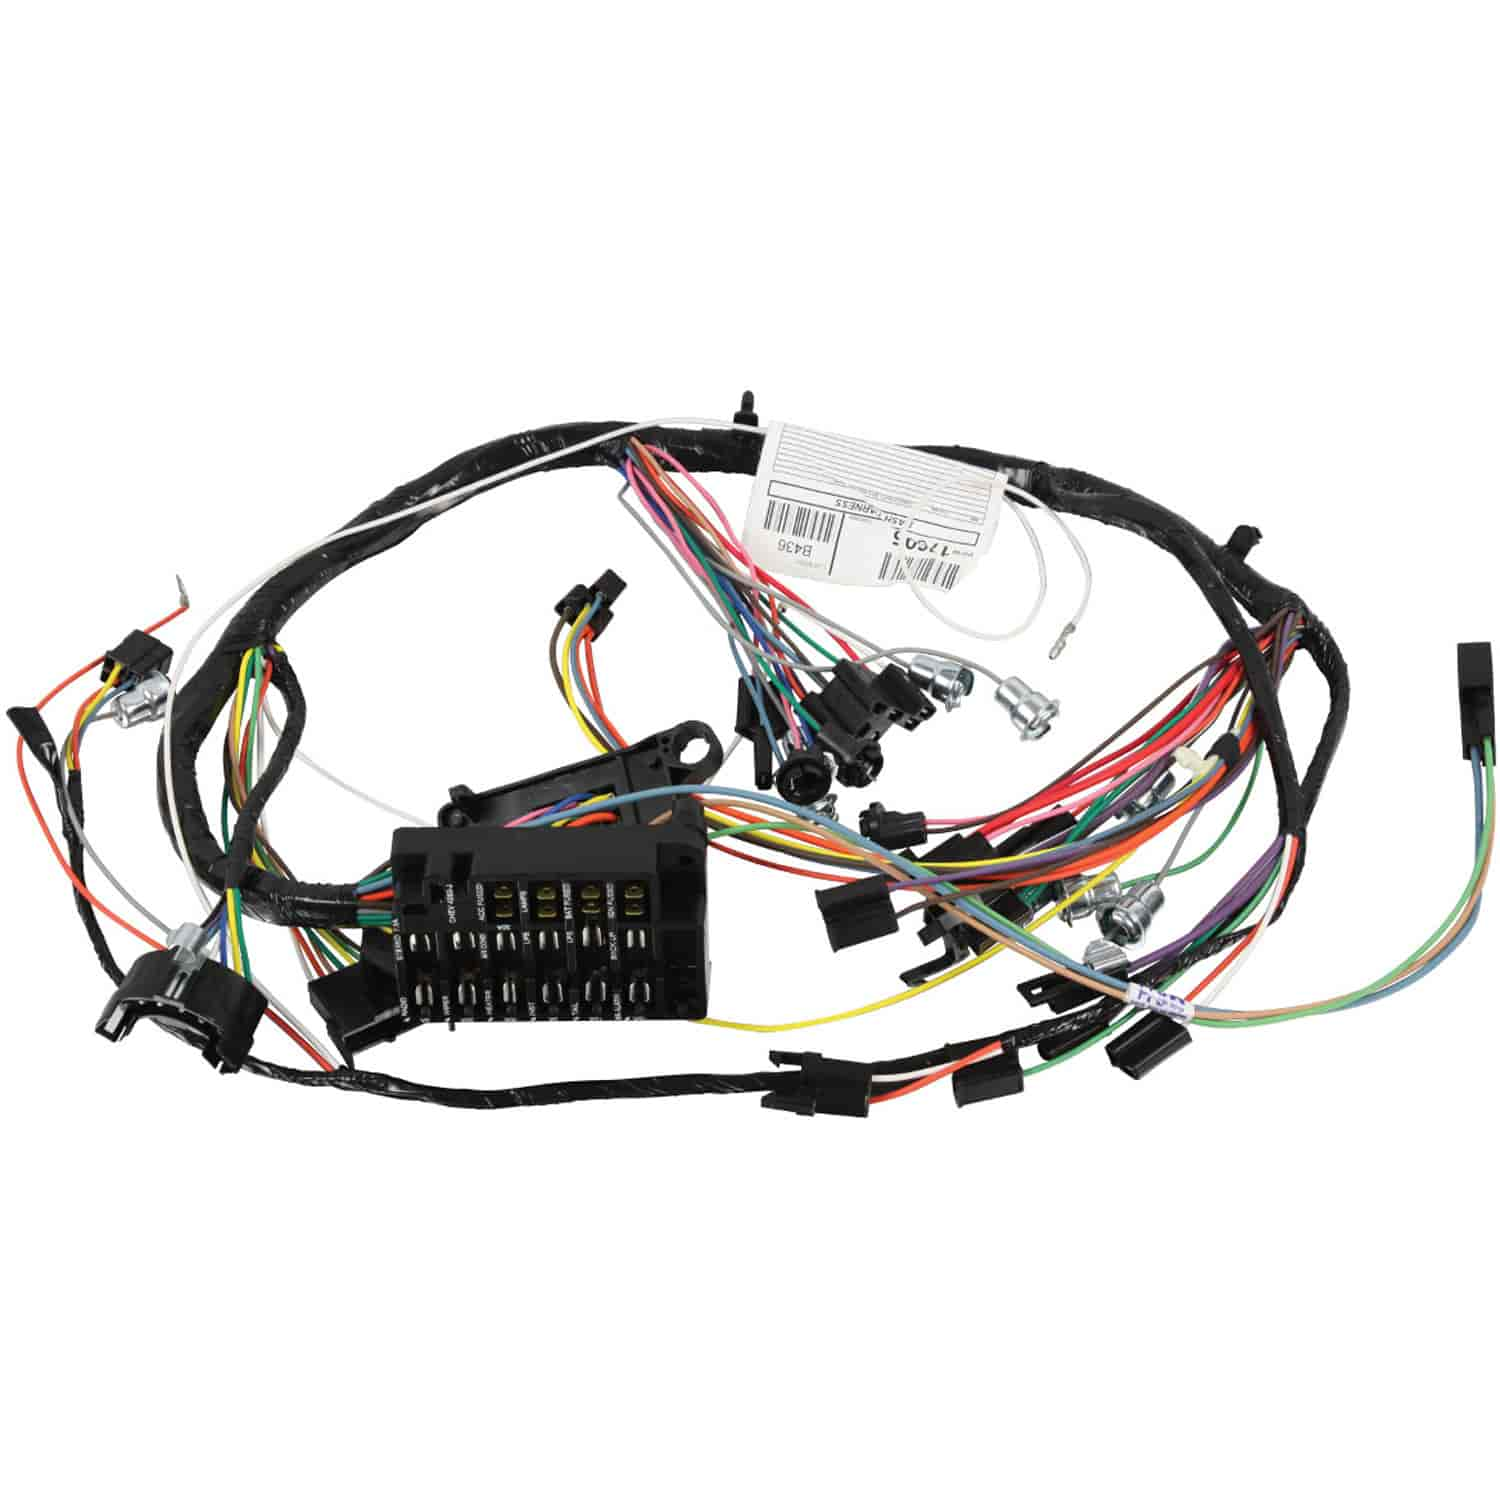 hight resolution of restoparts wiring harness dash 1966 chevelle el camino warning lights console